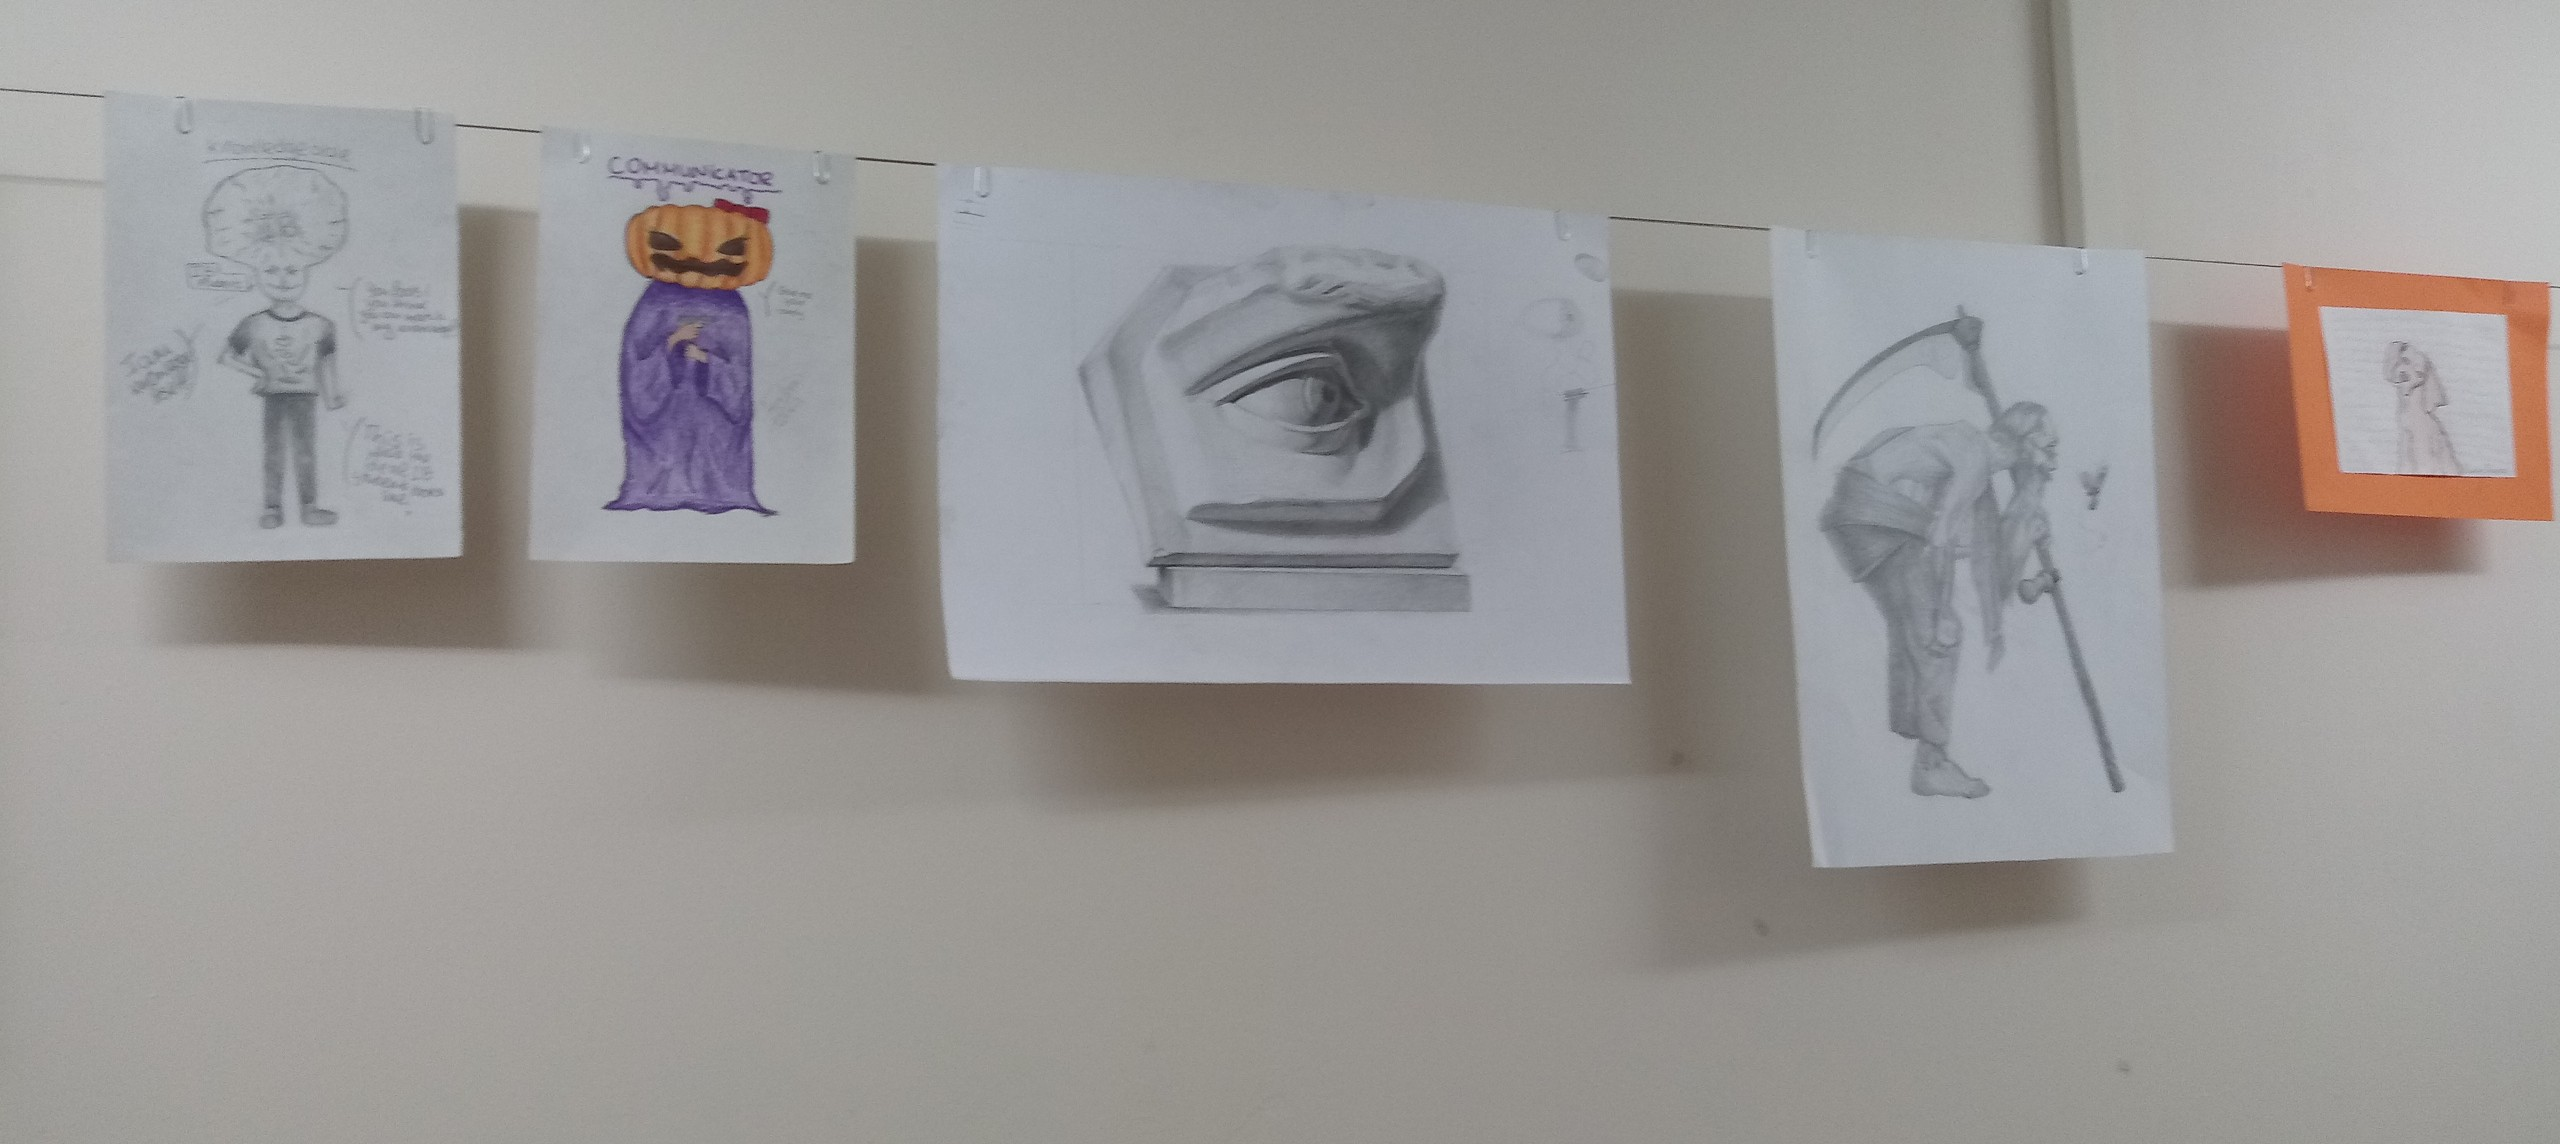 First exhibition in our art space